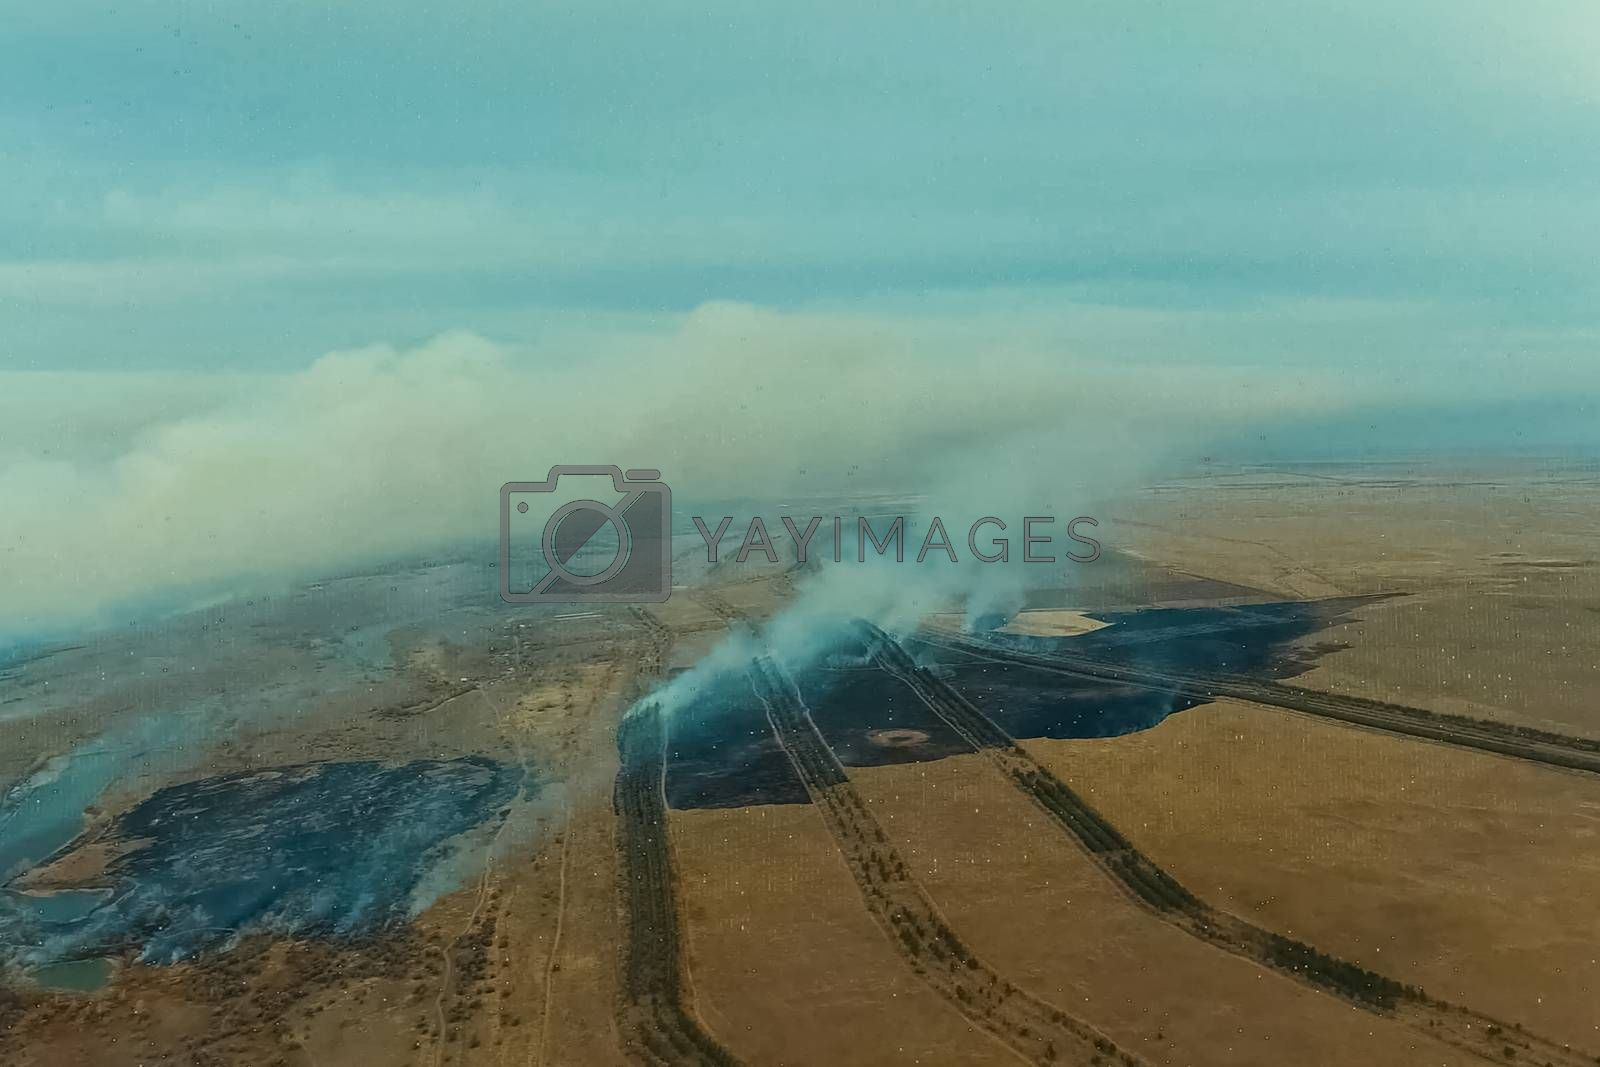 tundra fire. Burning dry grass and peat bogs, fire and smoke in the tundra.